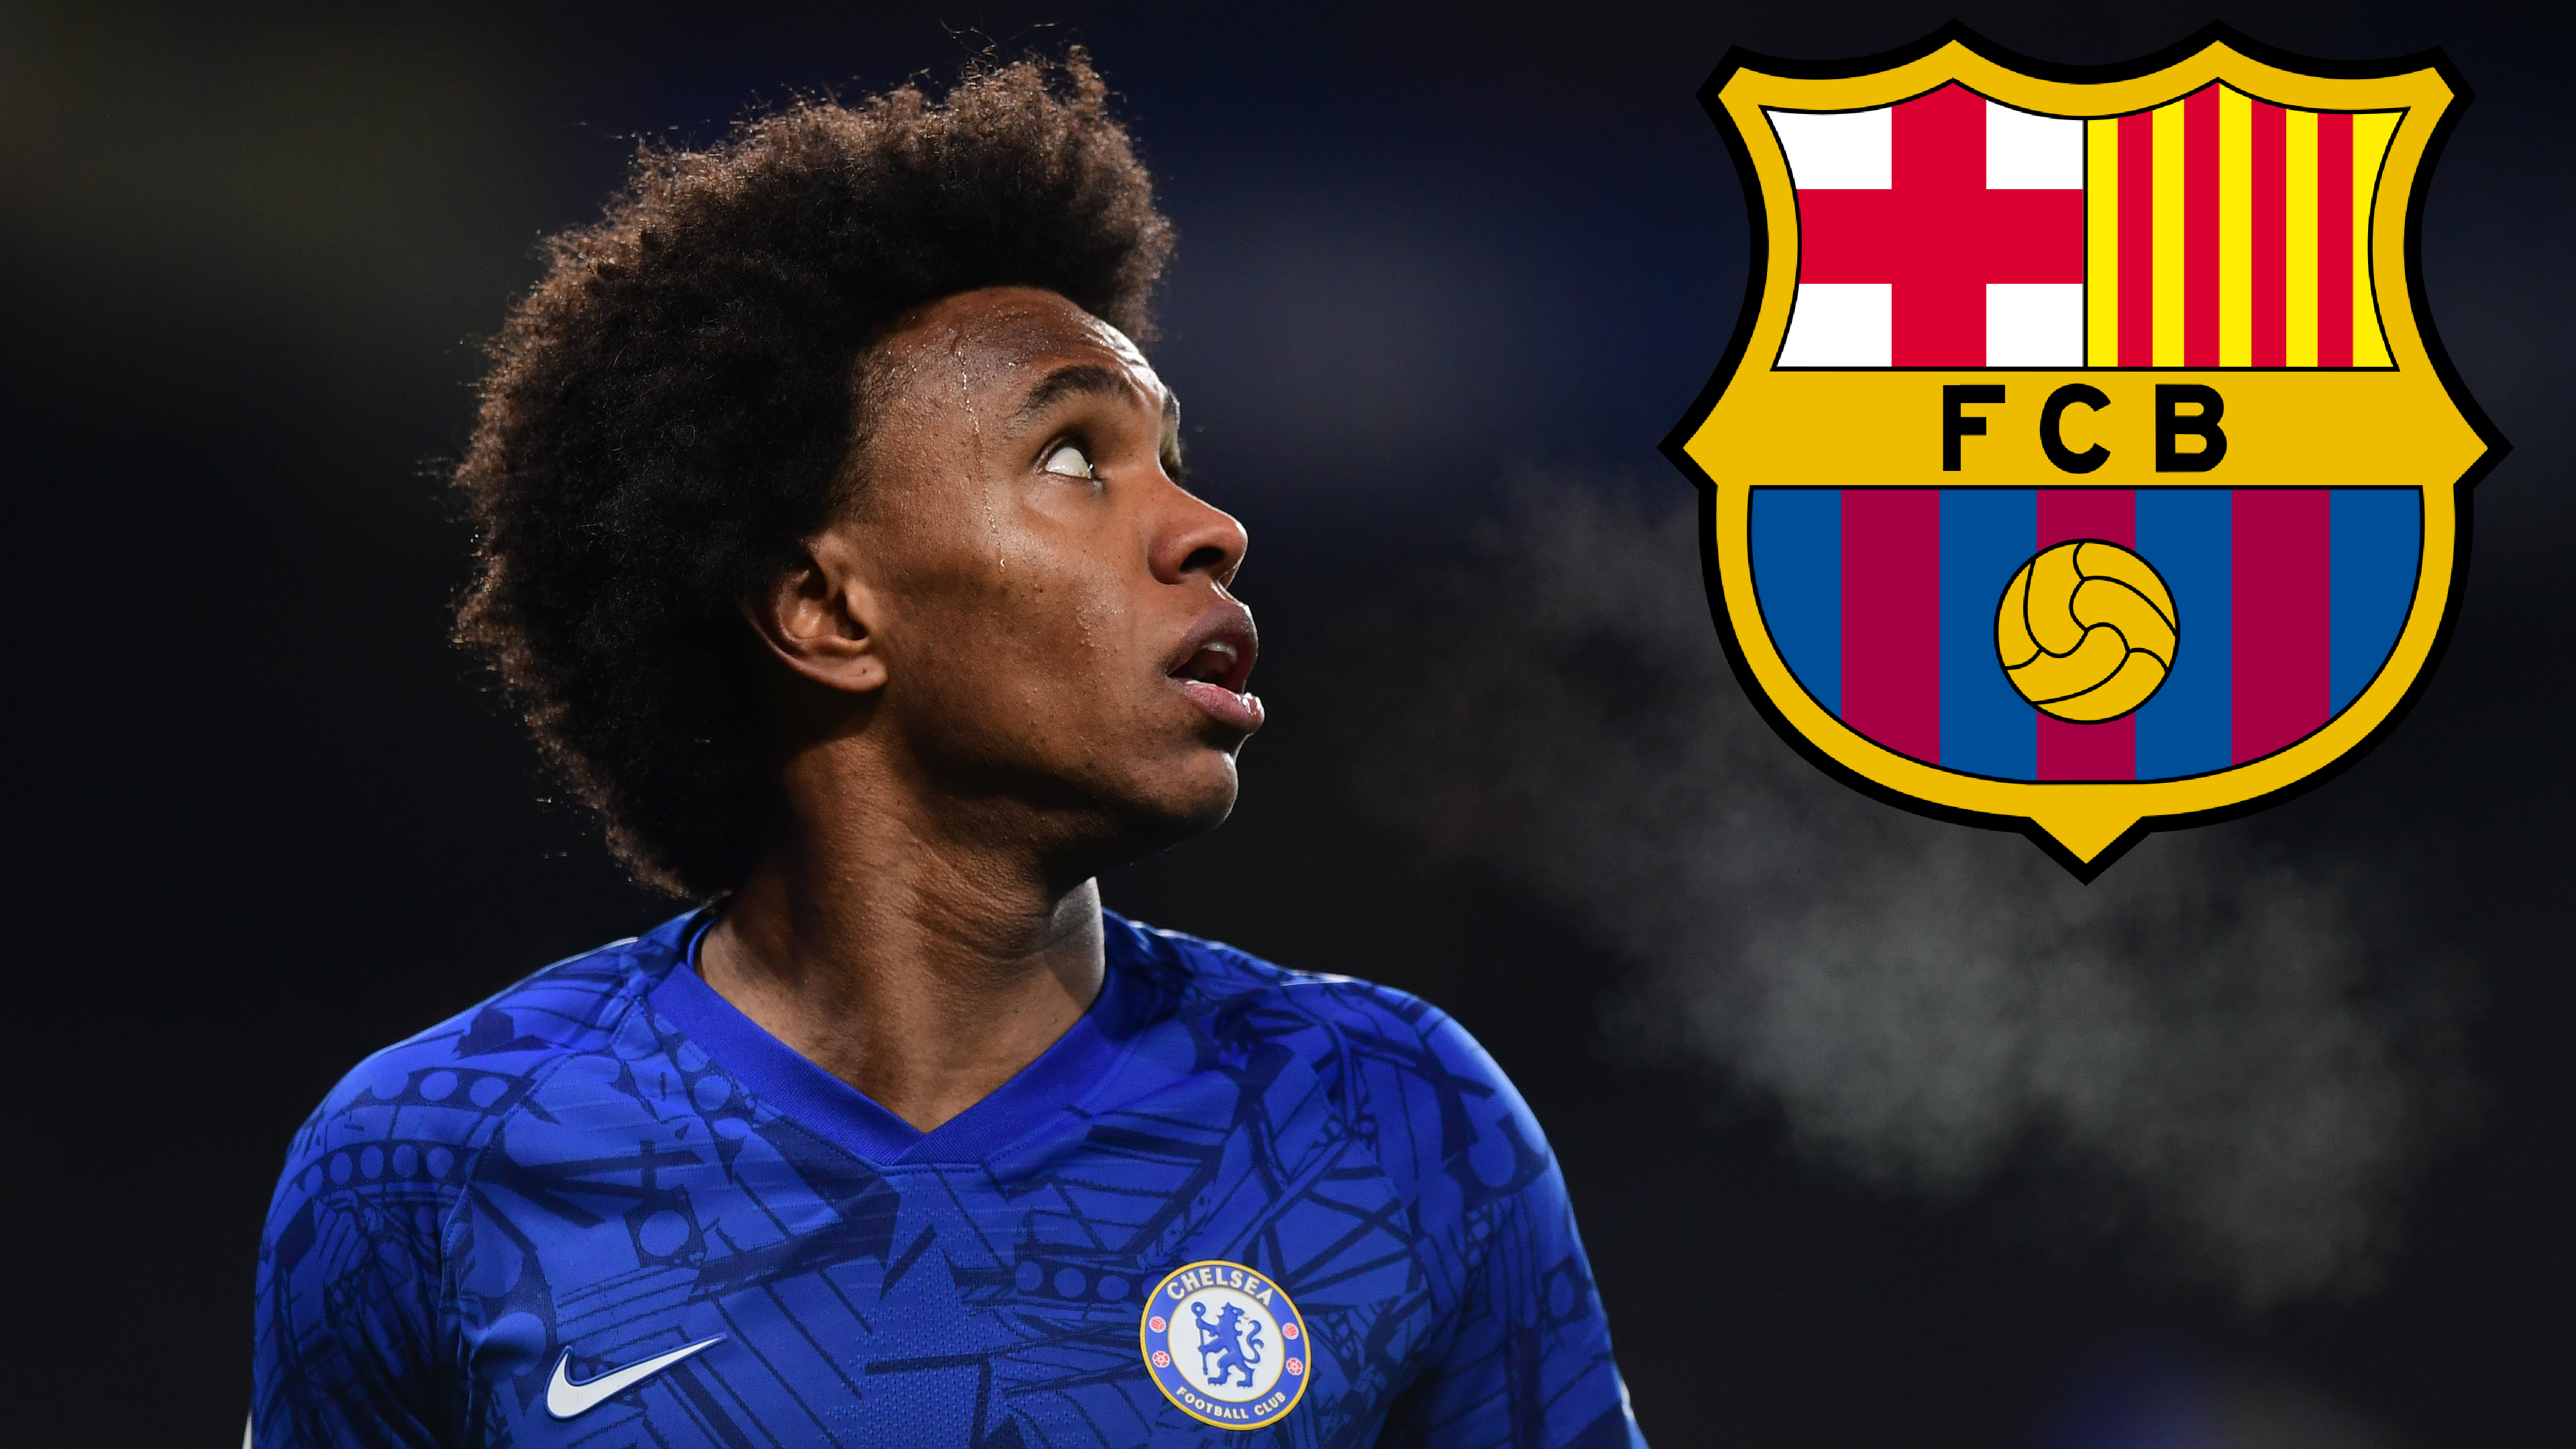 Willian could do well at Barcelona but Mourinho reunion at Spurs another good option - Rivaldo